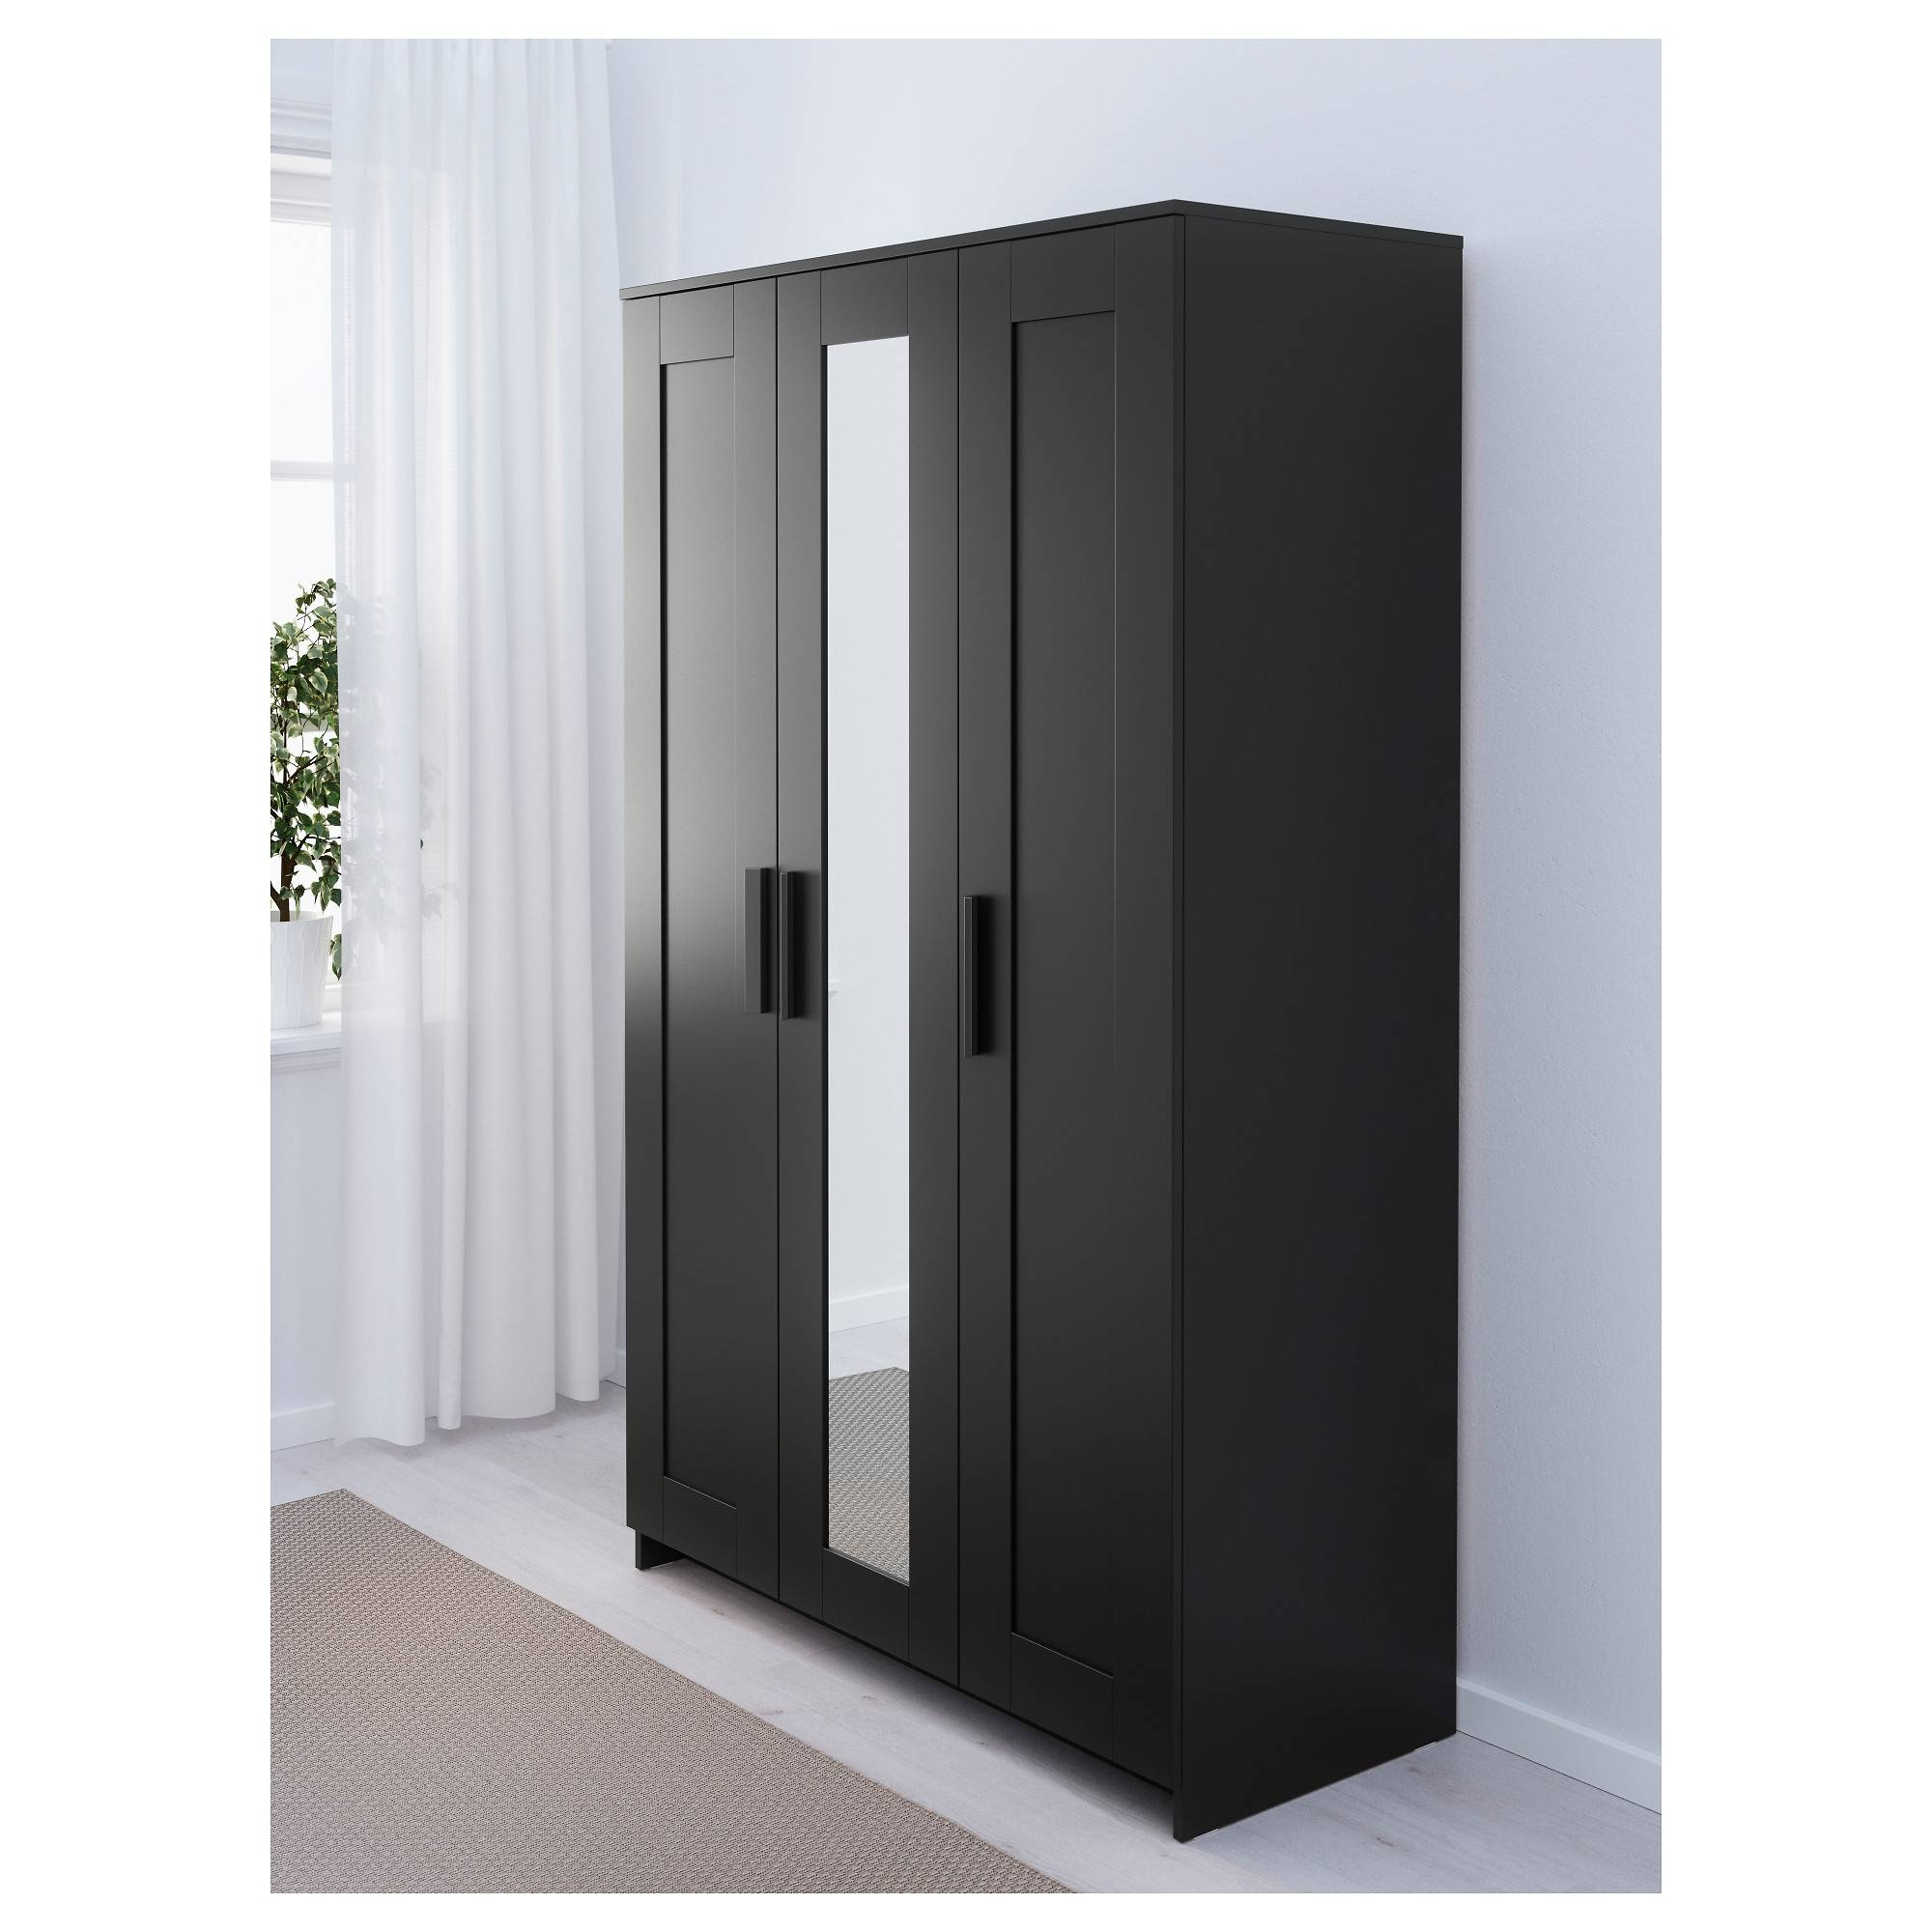 Brimnes Wardrobe With 3 Doors - Black - Ikea pertaining to Black Wardrobes With Mirror (Image 7 of 15)